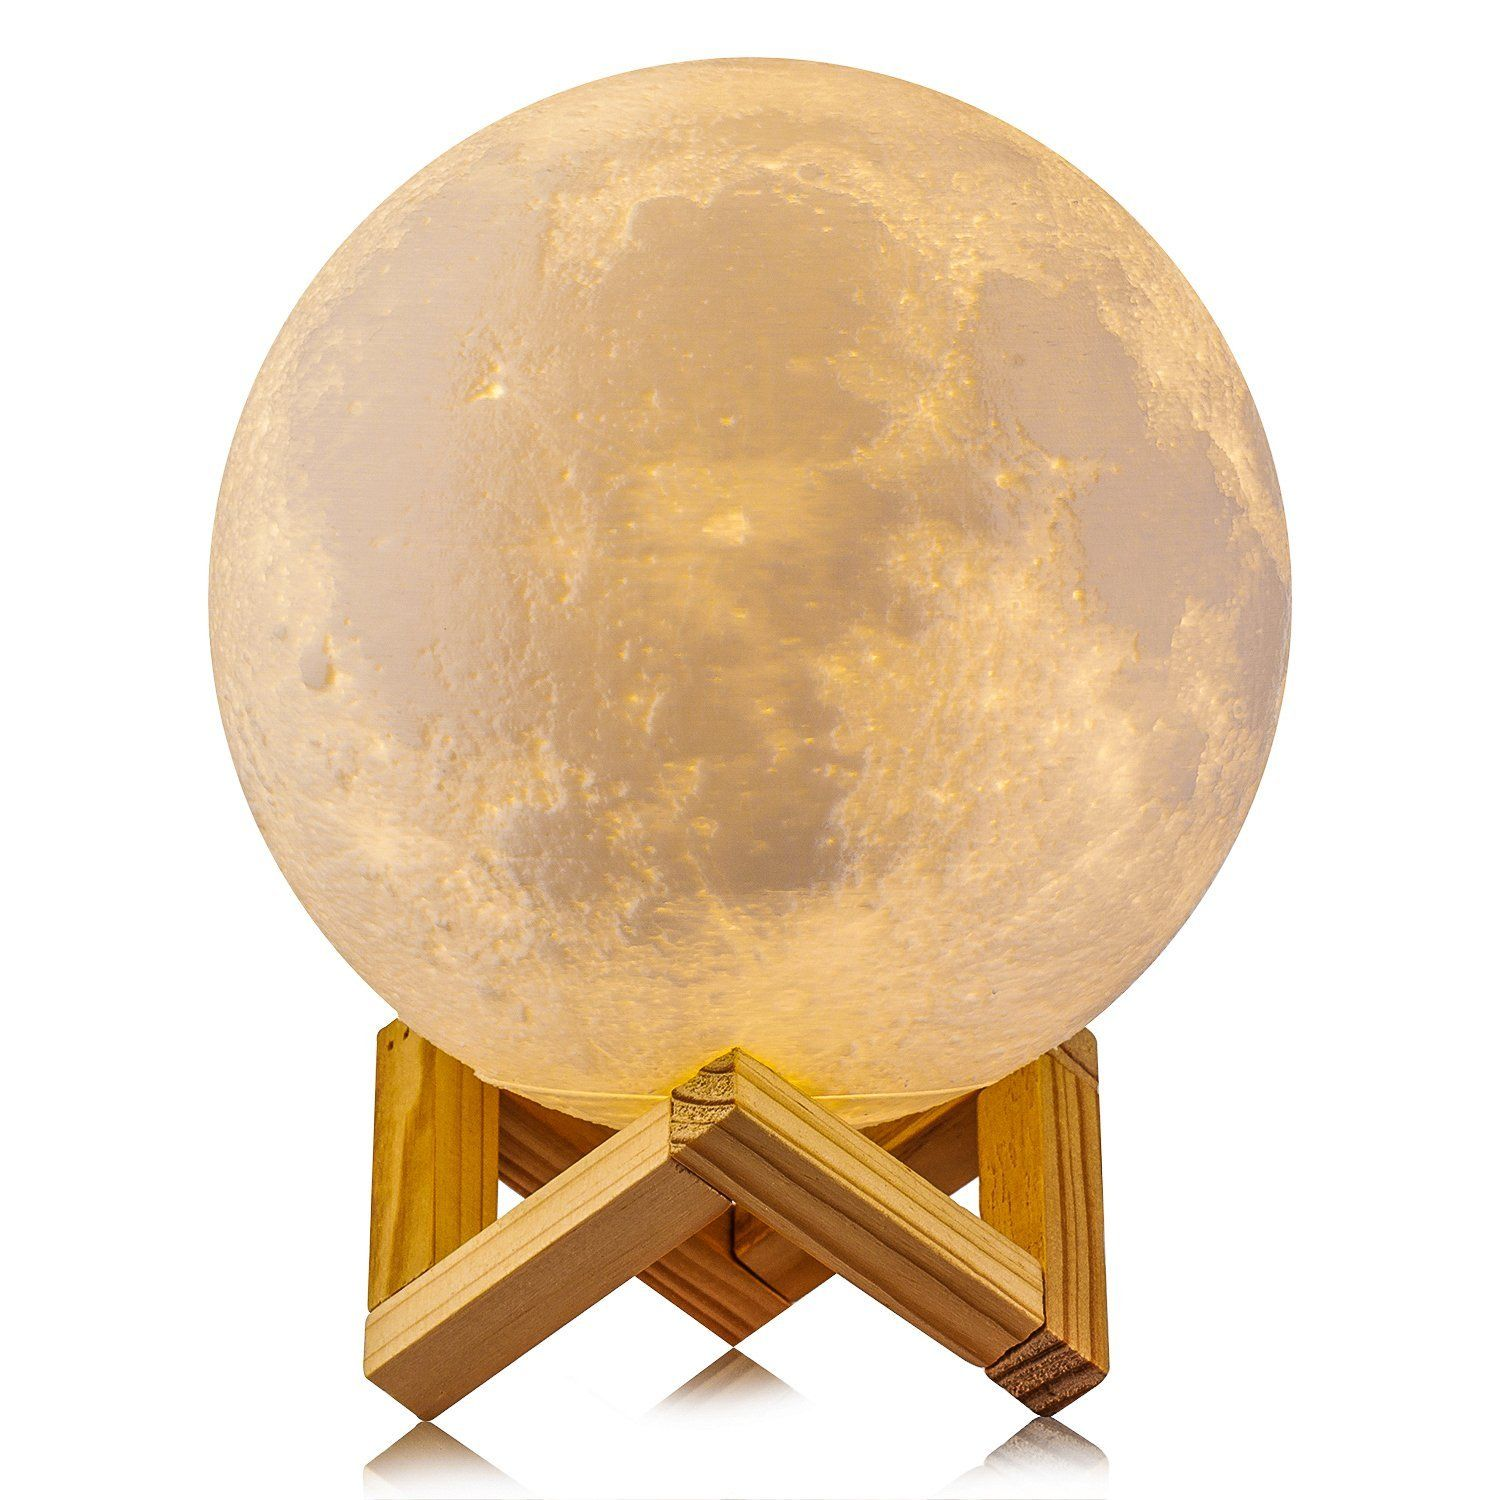 Tsv Night Light 3d Printing Moon Lamp Rechargeable Lunar Night Light Dimmable Touch Control Brightness Two T Baby Night Light Moon Light Lamp Night Light Lamp